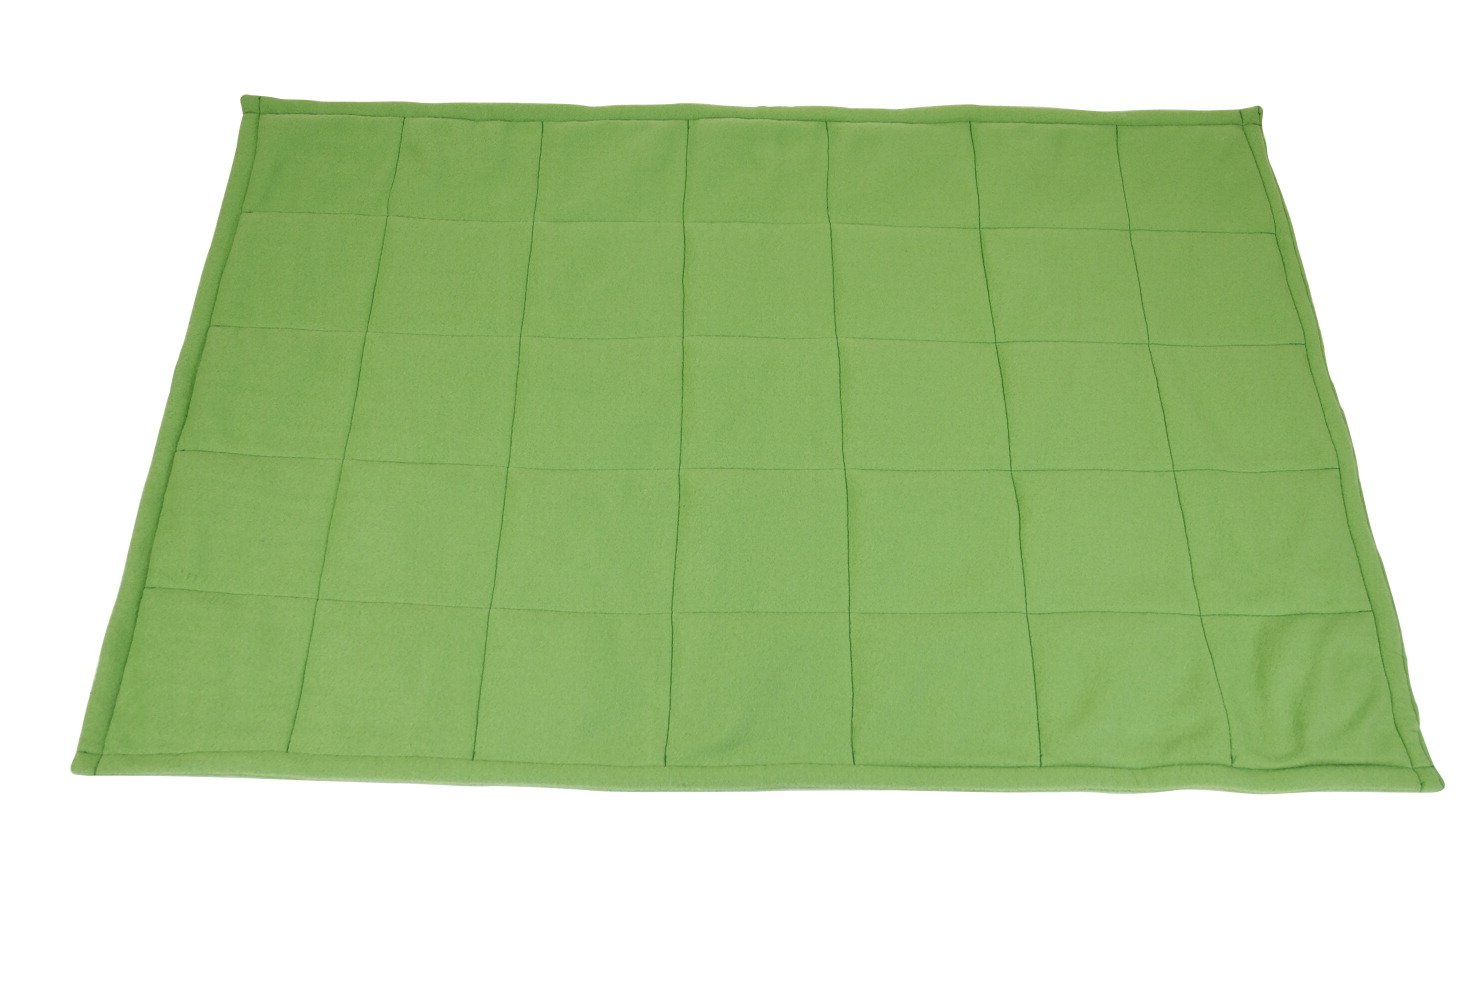 Abilitations Fleece Weighted Blanket, Small, 5 Pounds, Green